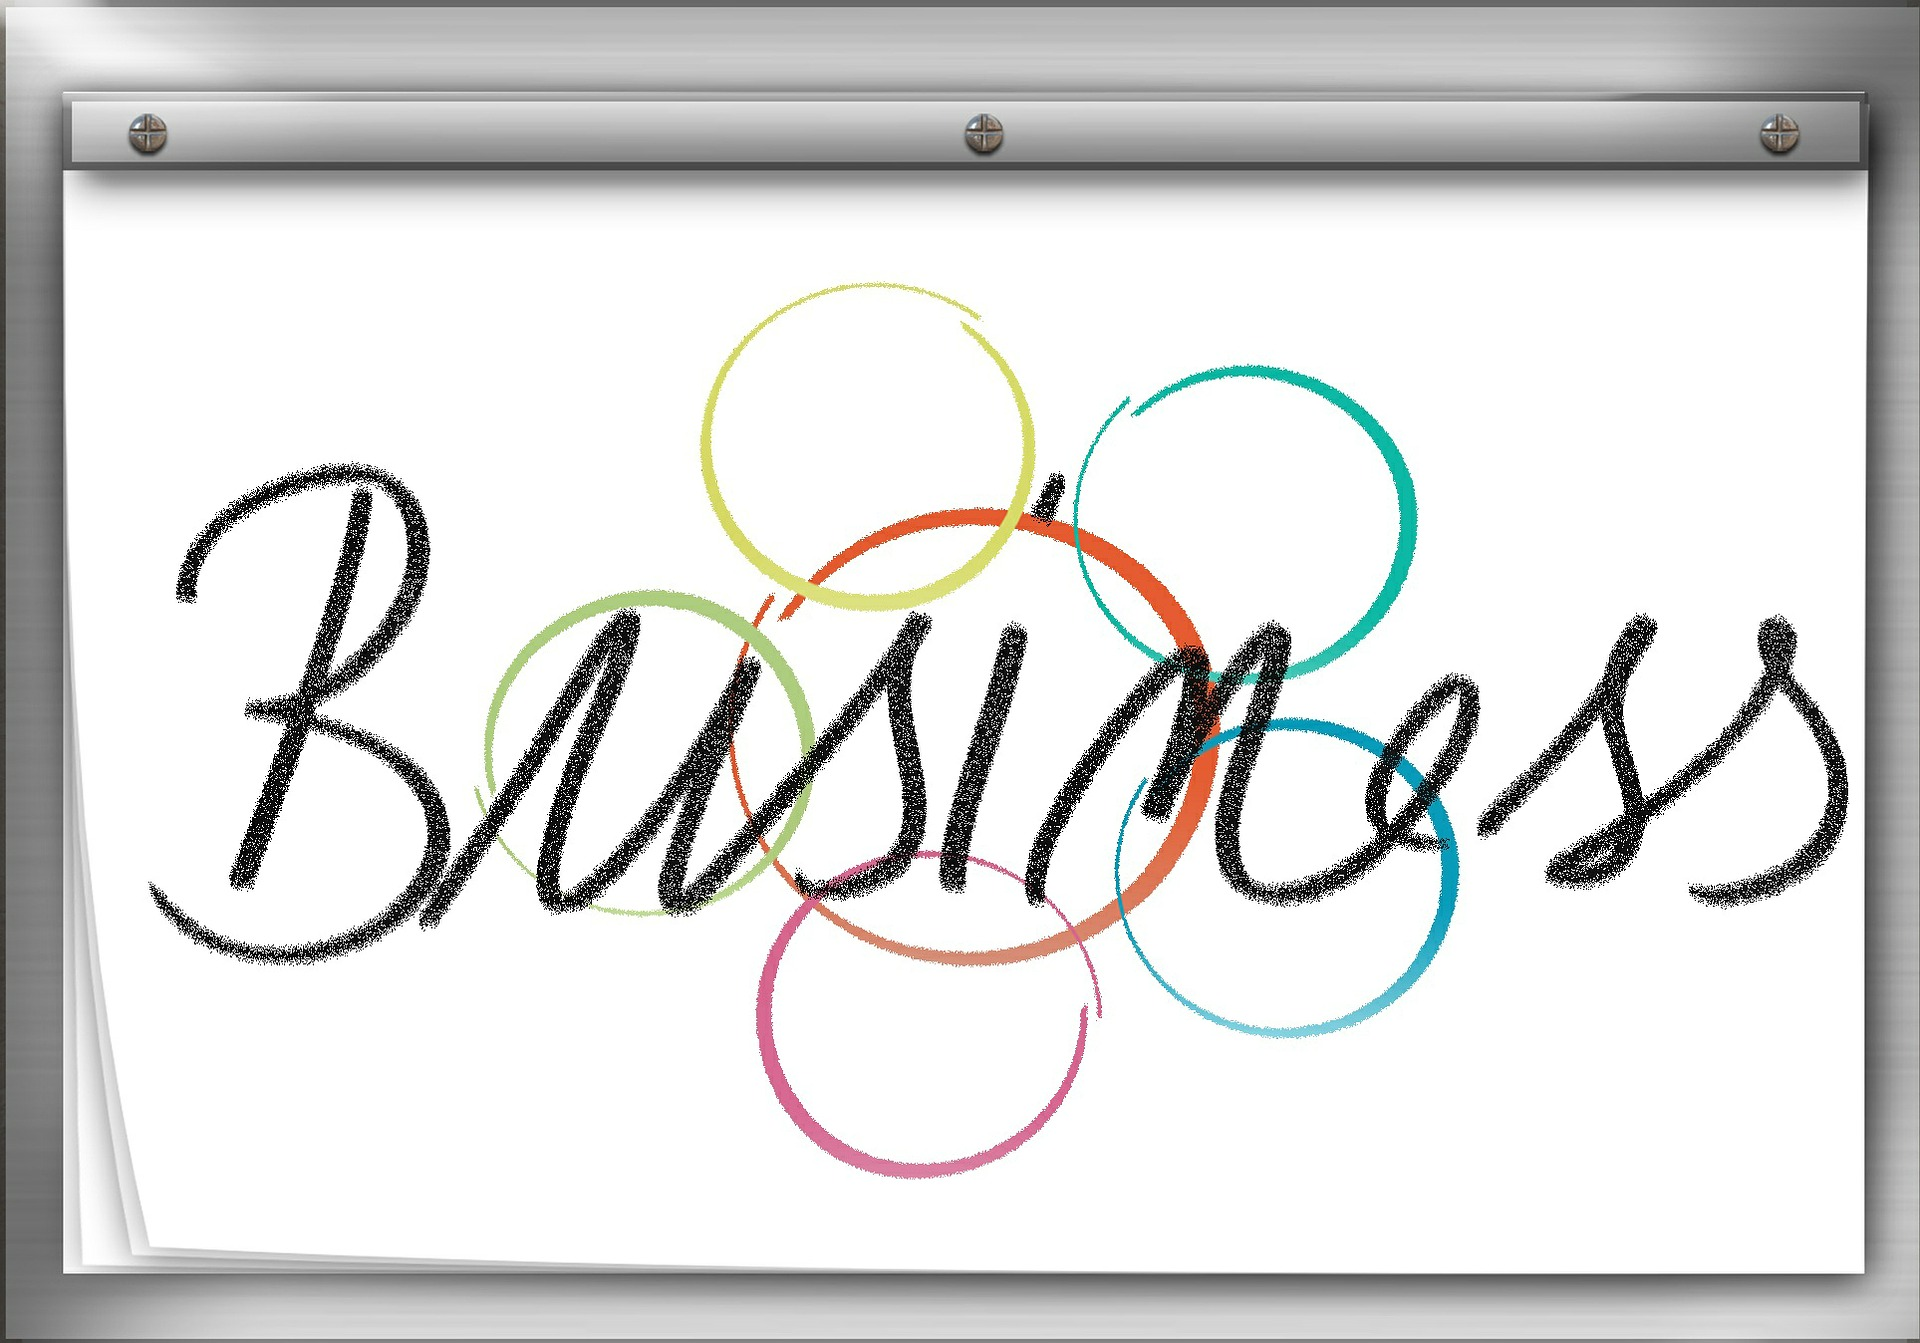 business-577026_1920